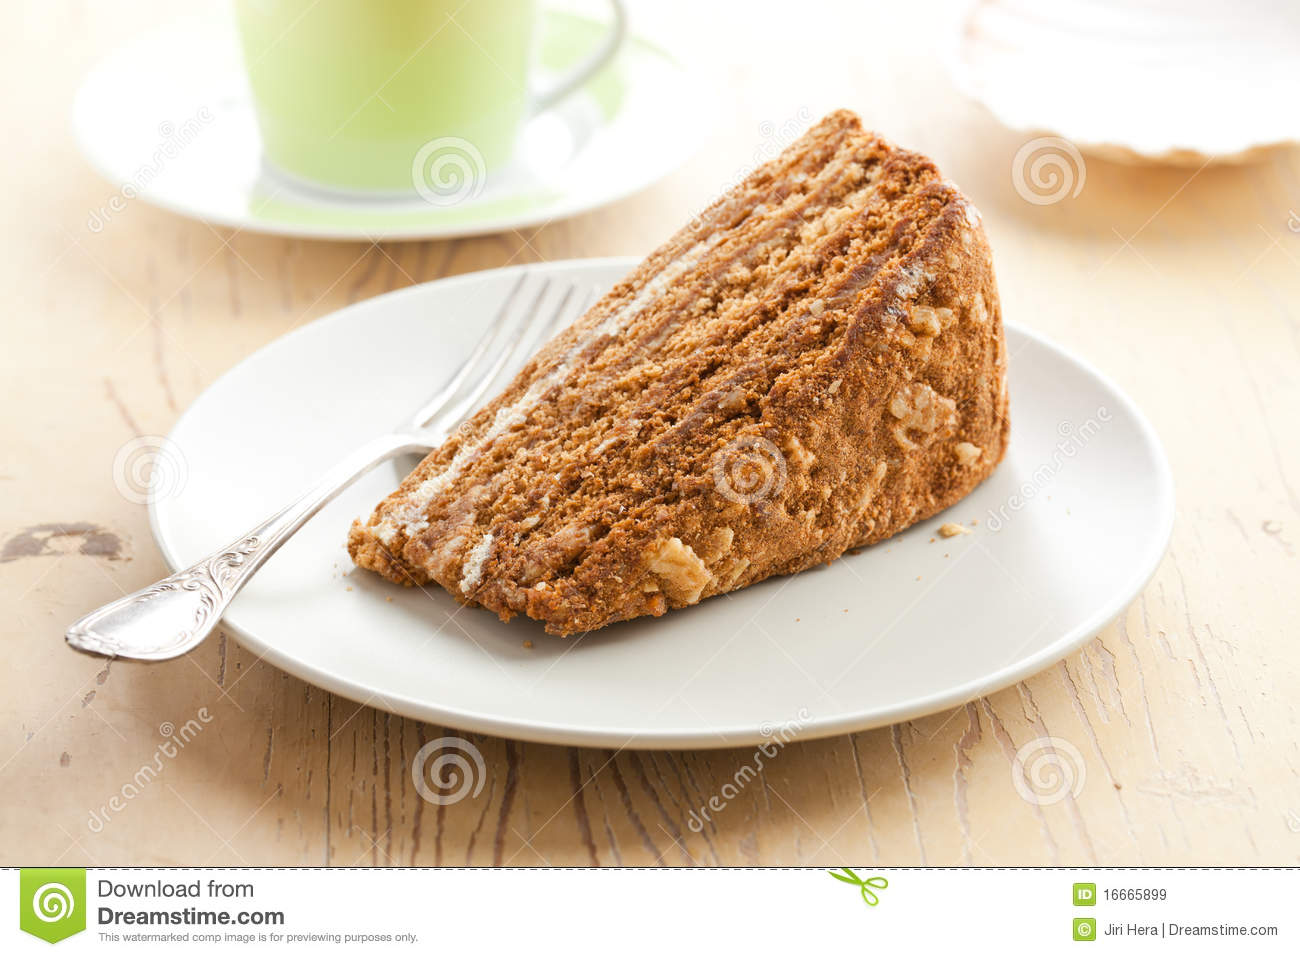 Clipart Of Honey Cake : Sweet Honey-cake Royalty Free Stock Images - Image: 16665899